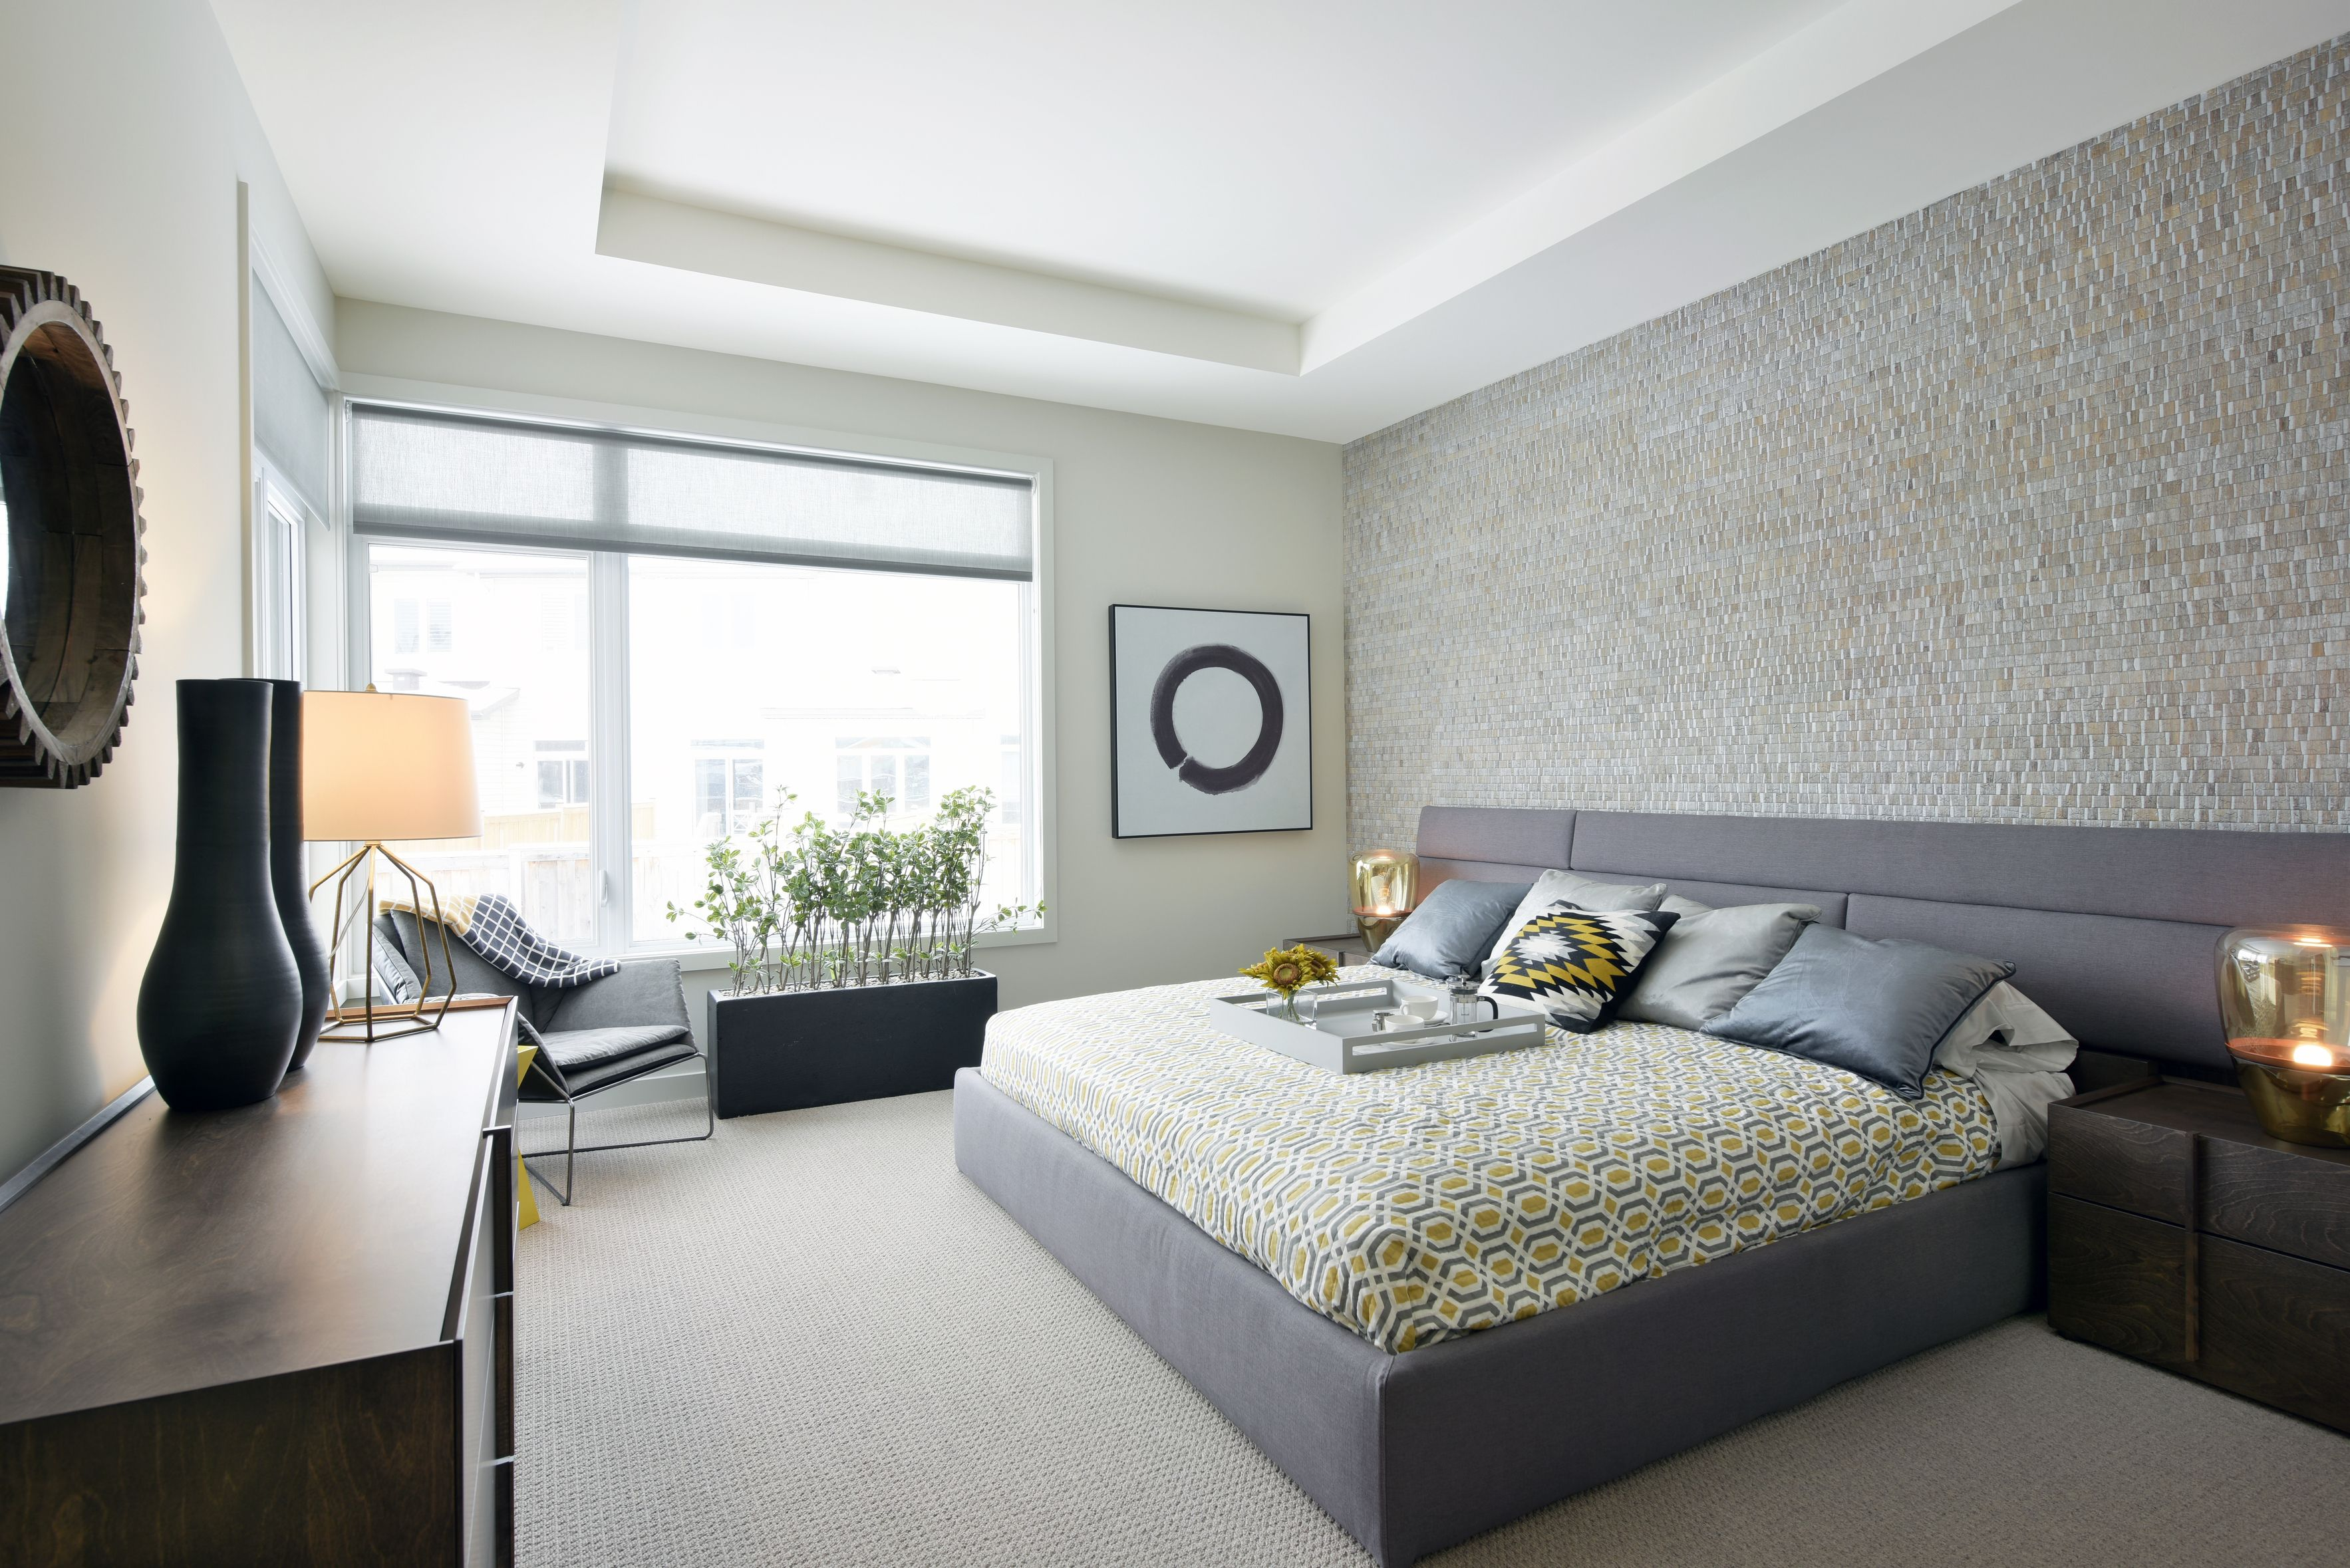 The Master Bedroom Features A Textured Wallpaper Accent Wall And Modular Mid Century Bed Frame Bedroom Wall Accent Wall Bedroom Bedding Master Bedroom